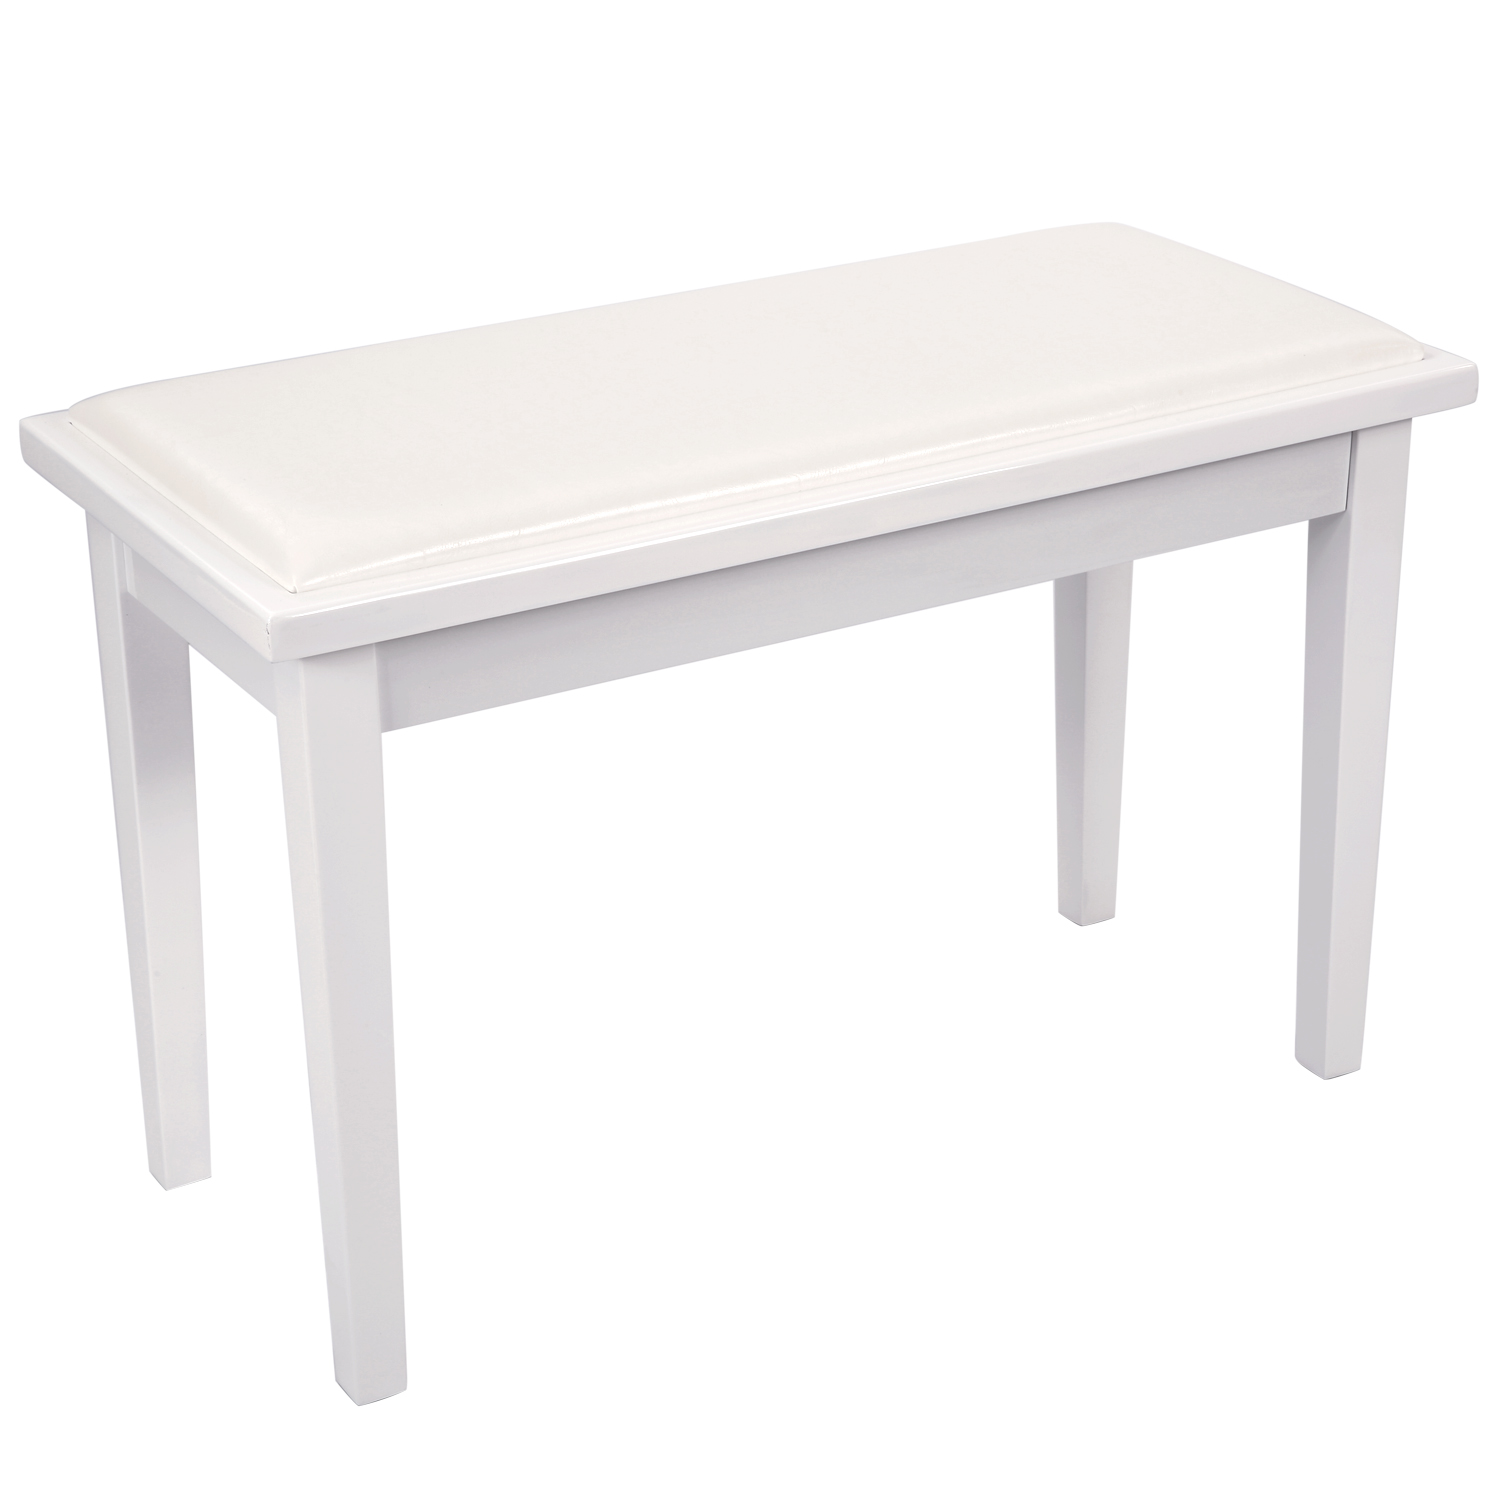 Remarkable Details About Neewer White Faux Leather Padded Duet Piano Bench With Leather Seat Rubber Feet Short Links Chair Design For Home Short Linksinfo